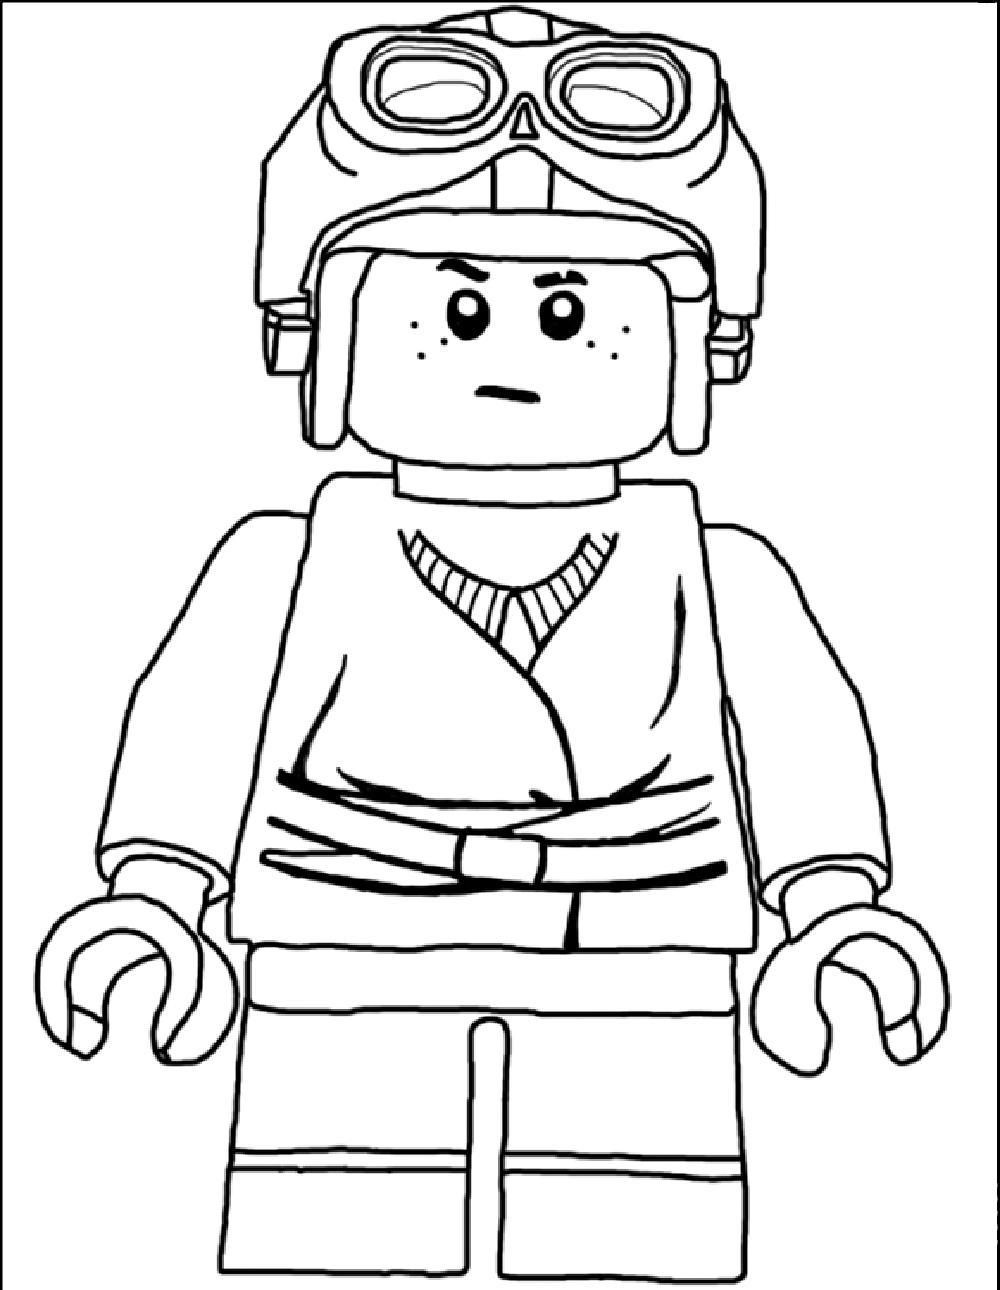 printable lego star wars coloring pages lego luke skywalker coloring pages coloring home pages coloring printable wars star lego